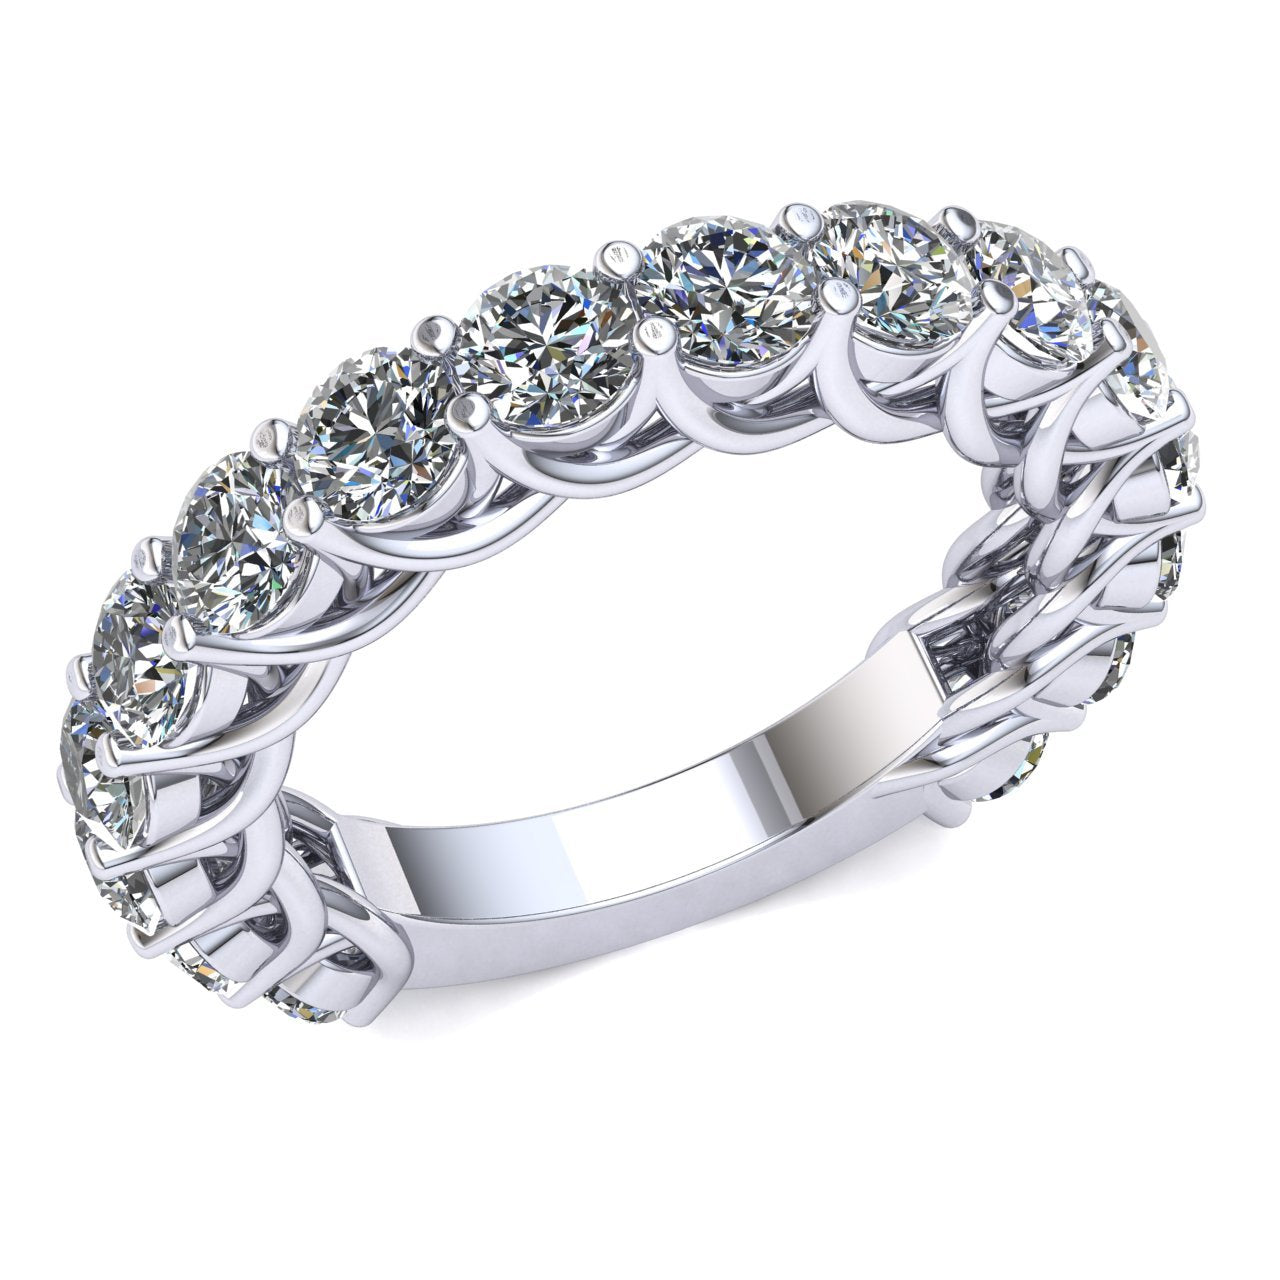 3.30 Ct Round Natural GH I1 Diamond Woven Prong Wedding Ring Women's Eternity Band with Sizing Bar Set in 14k Gold